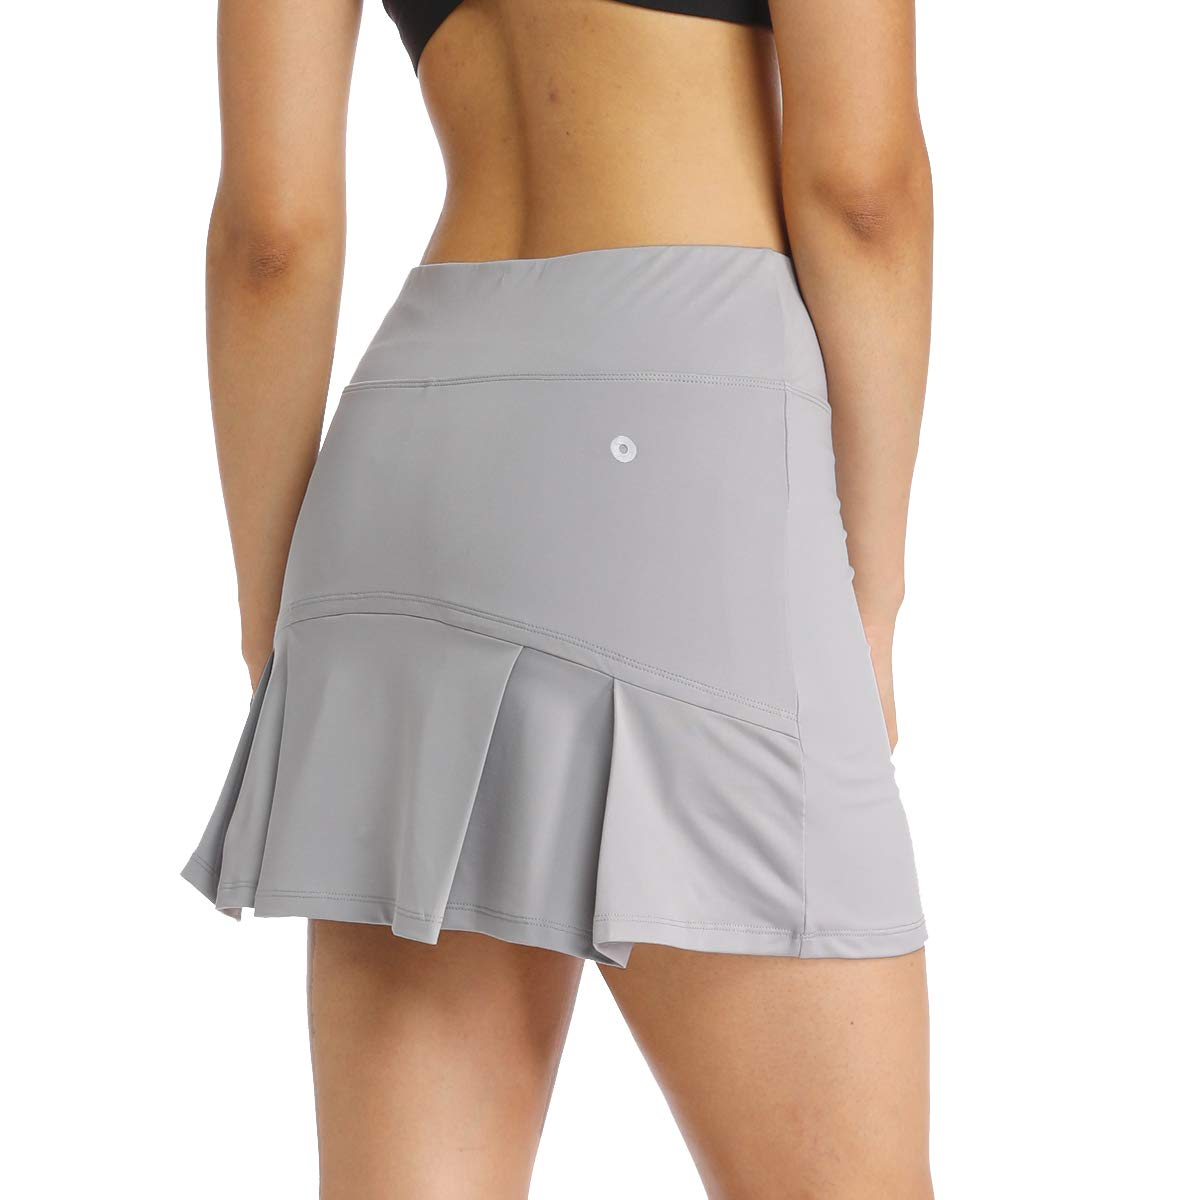 Ibeauti Womens Back Pleated Athletic Tennis Golf Skorts Skirts with 3 Pockets Mesh Shorts for Running Active Workout (Grey, Medium) by Ibeauti